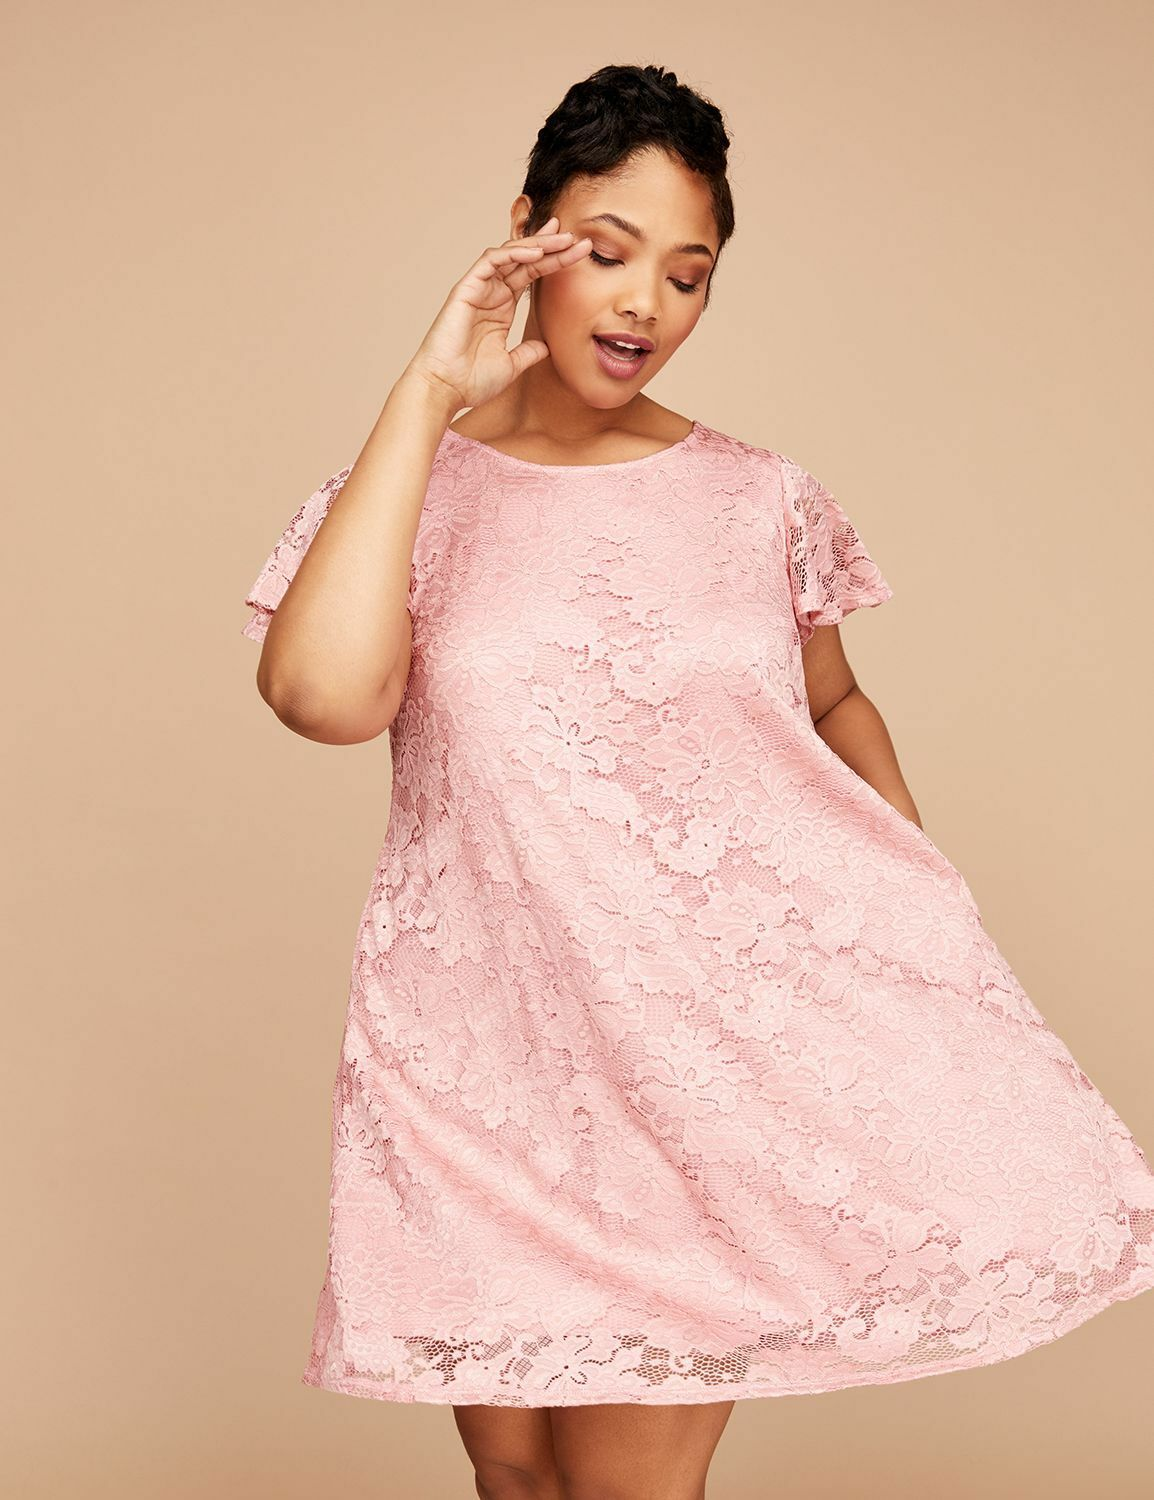 ef5099af305 NEW LANE BRYANT PLUS SIZE FLUTTER SLEEVE SWIG DRESS SZ 22 24 LACE PINK  nvpvko1430-Dresses